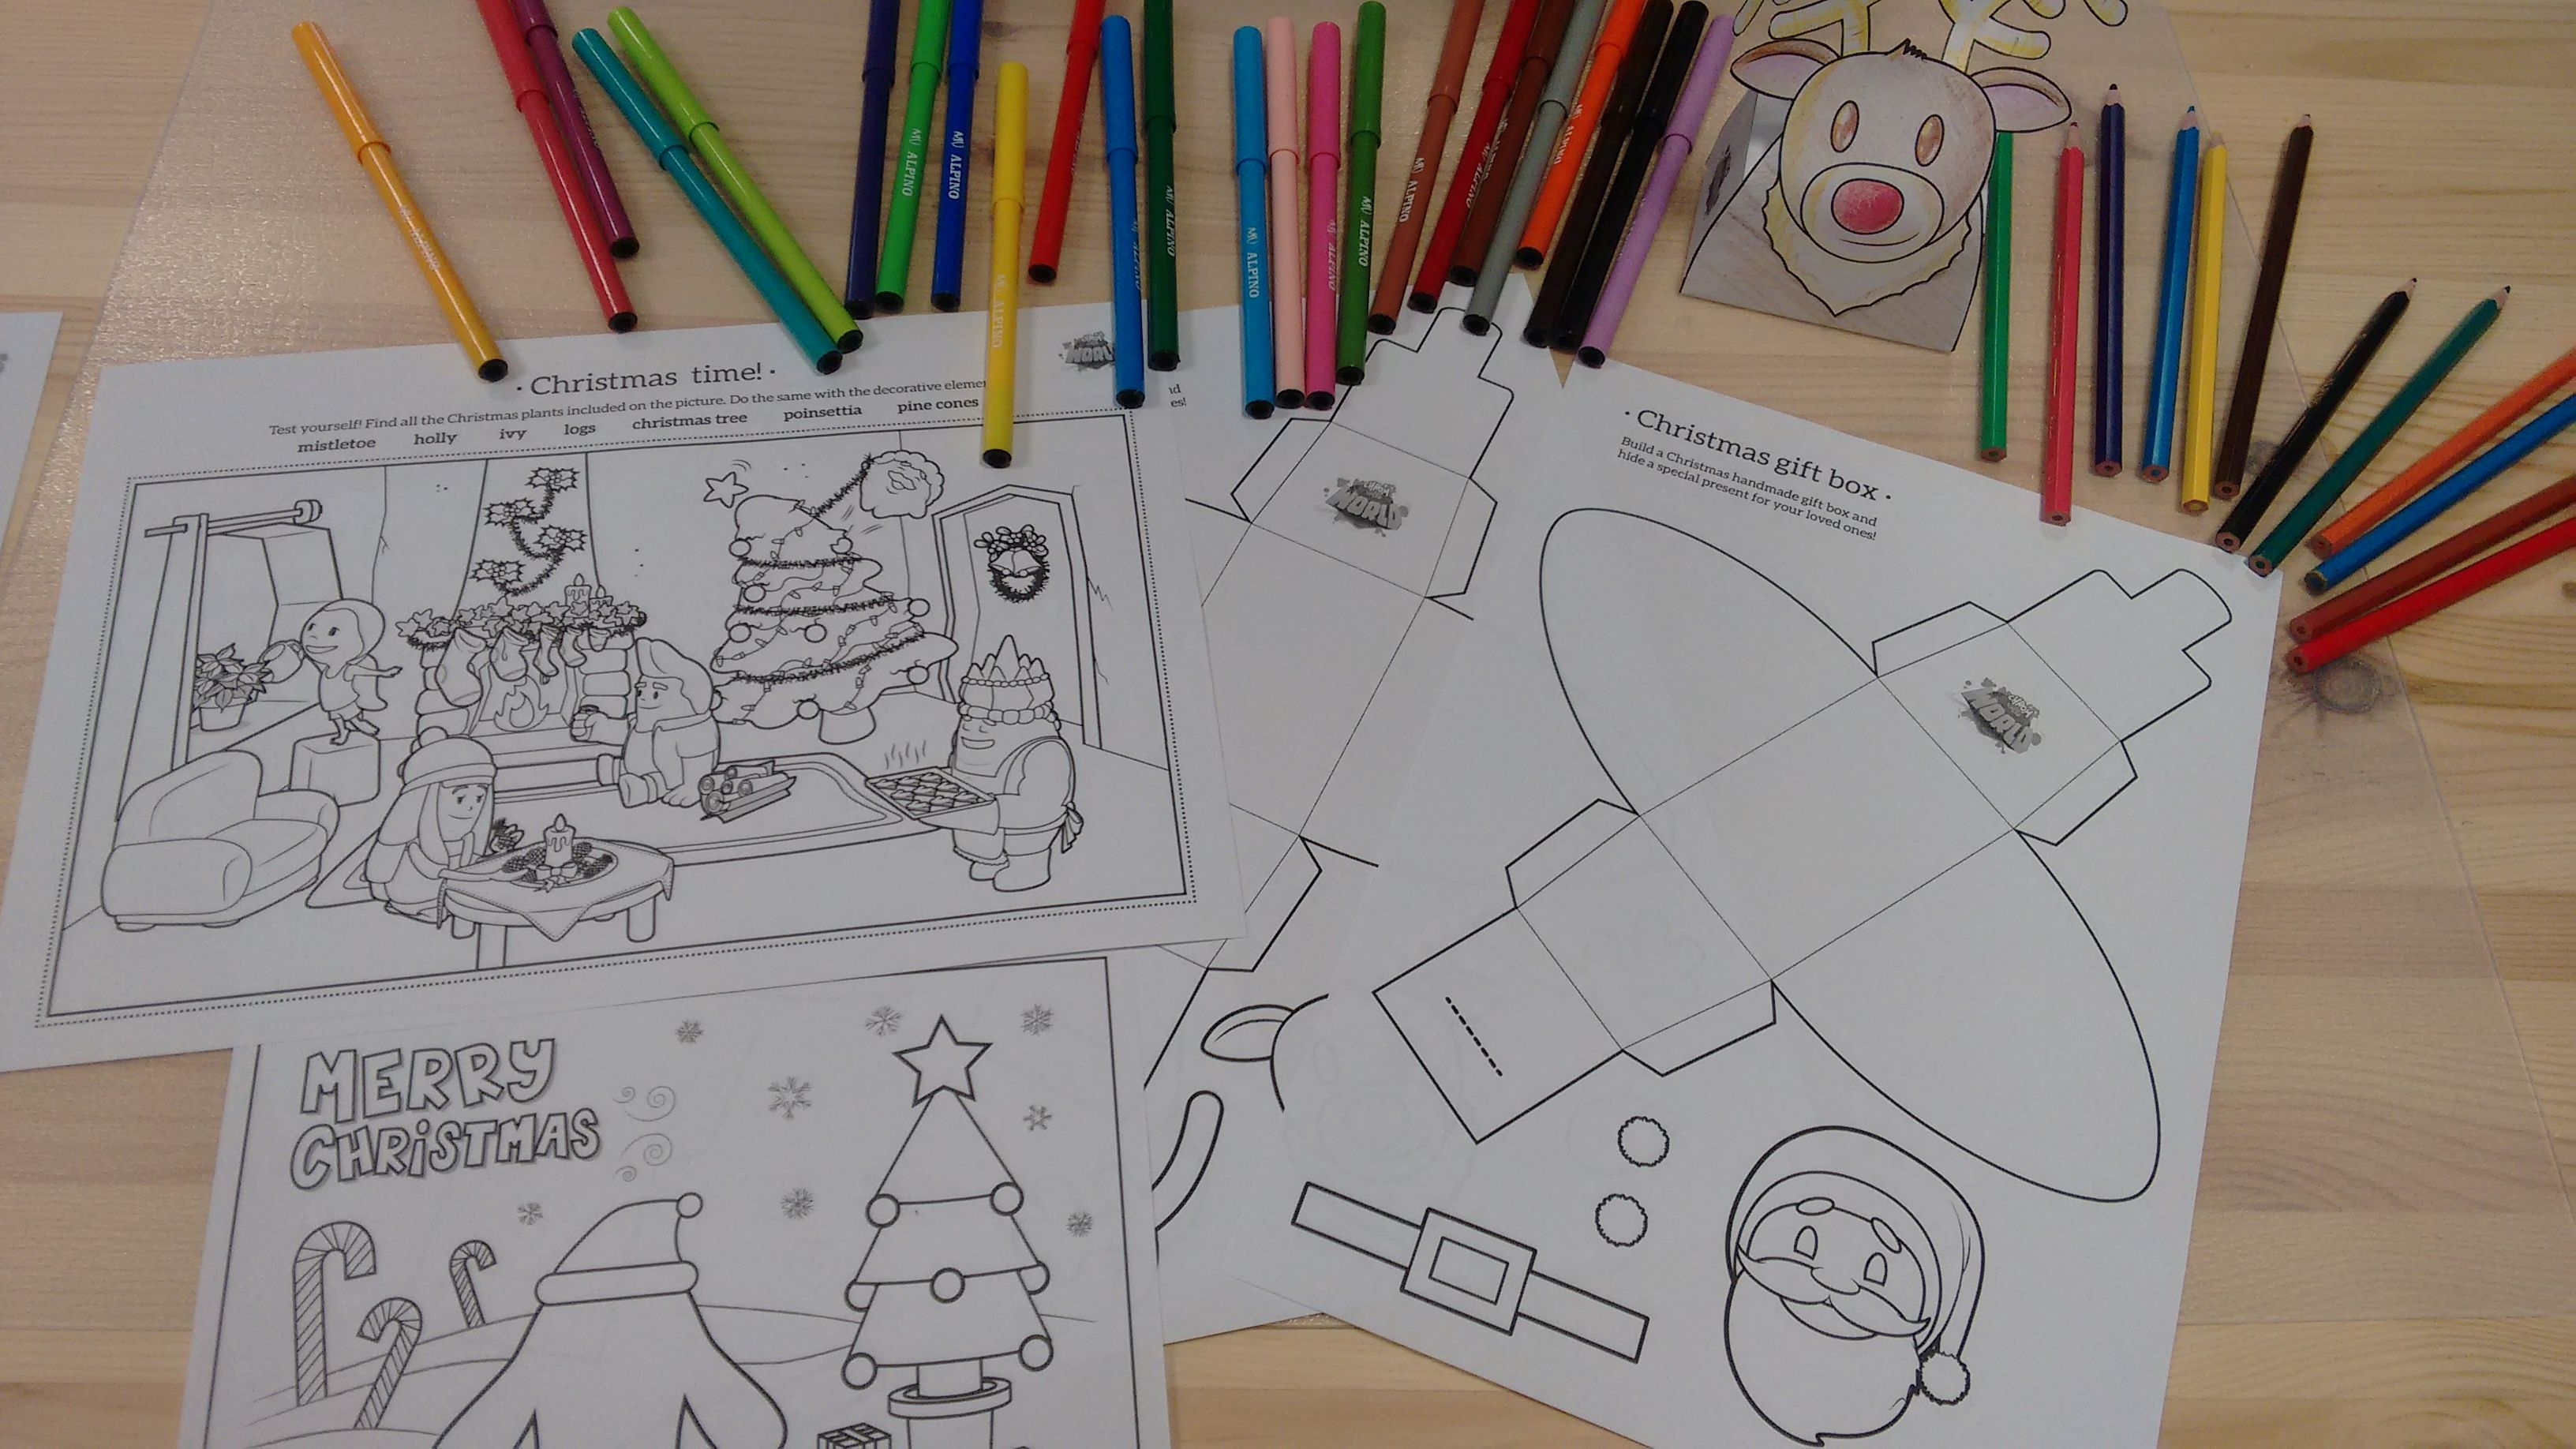 Have You Downloaded Our Free Christmas Pack Yet So Many Fun Stuff To Do Coloring Coloringpages Ar4learning Christmas Challenge Christmas Merry